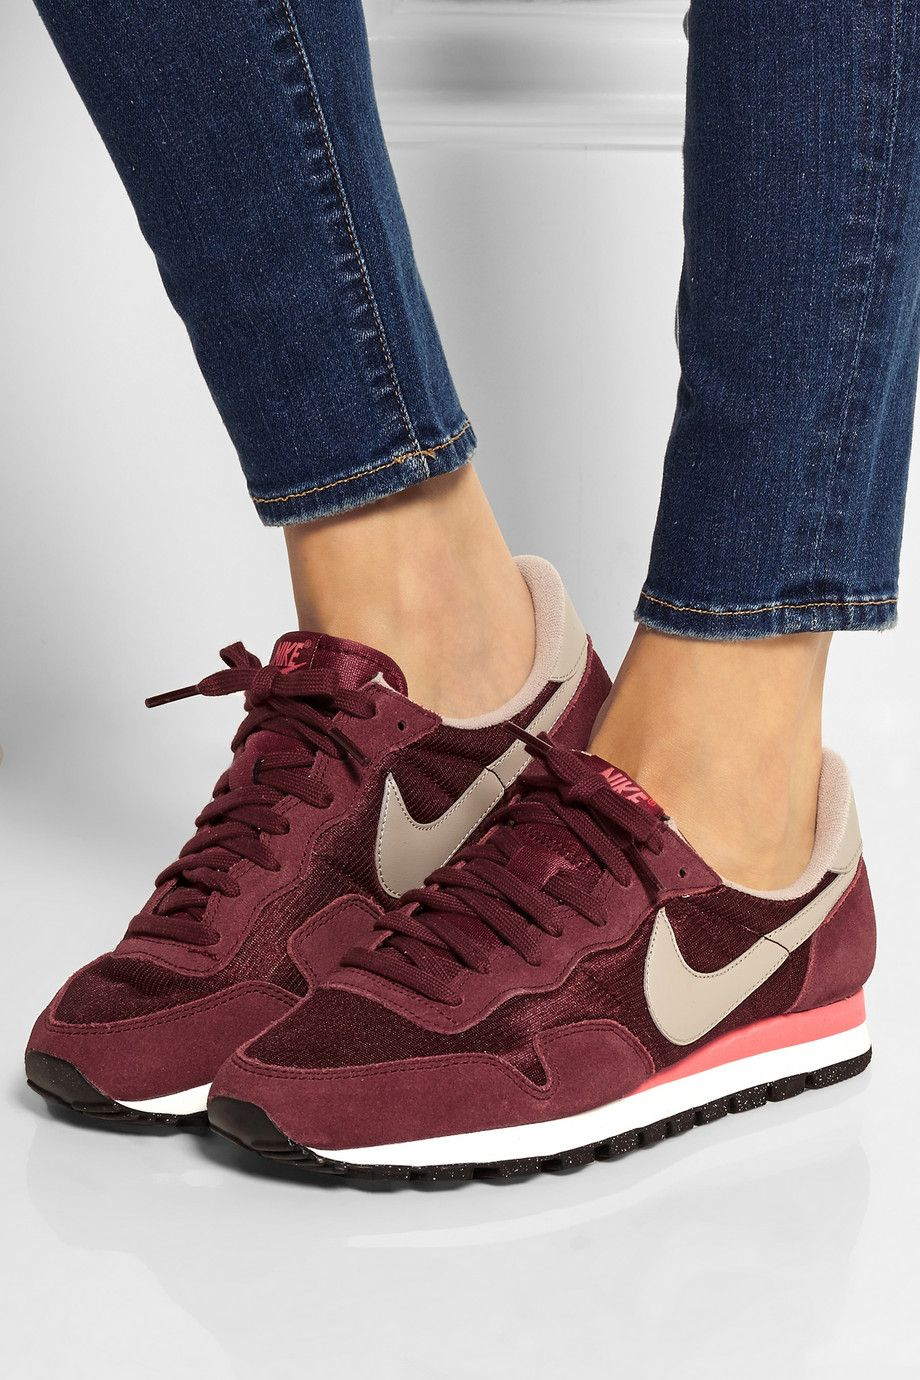 premium selection 7870d 9129e Nike   Air Pegasus 83 suede and mesh sneakers   Emilie Thadey Nike Mujer,  Zapatillas